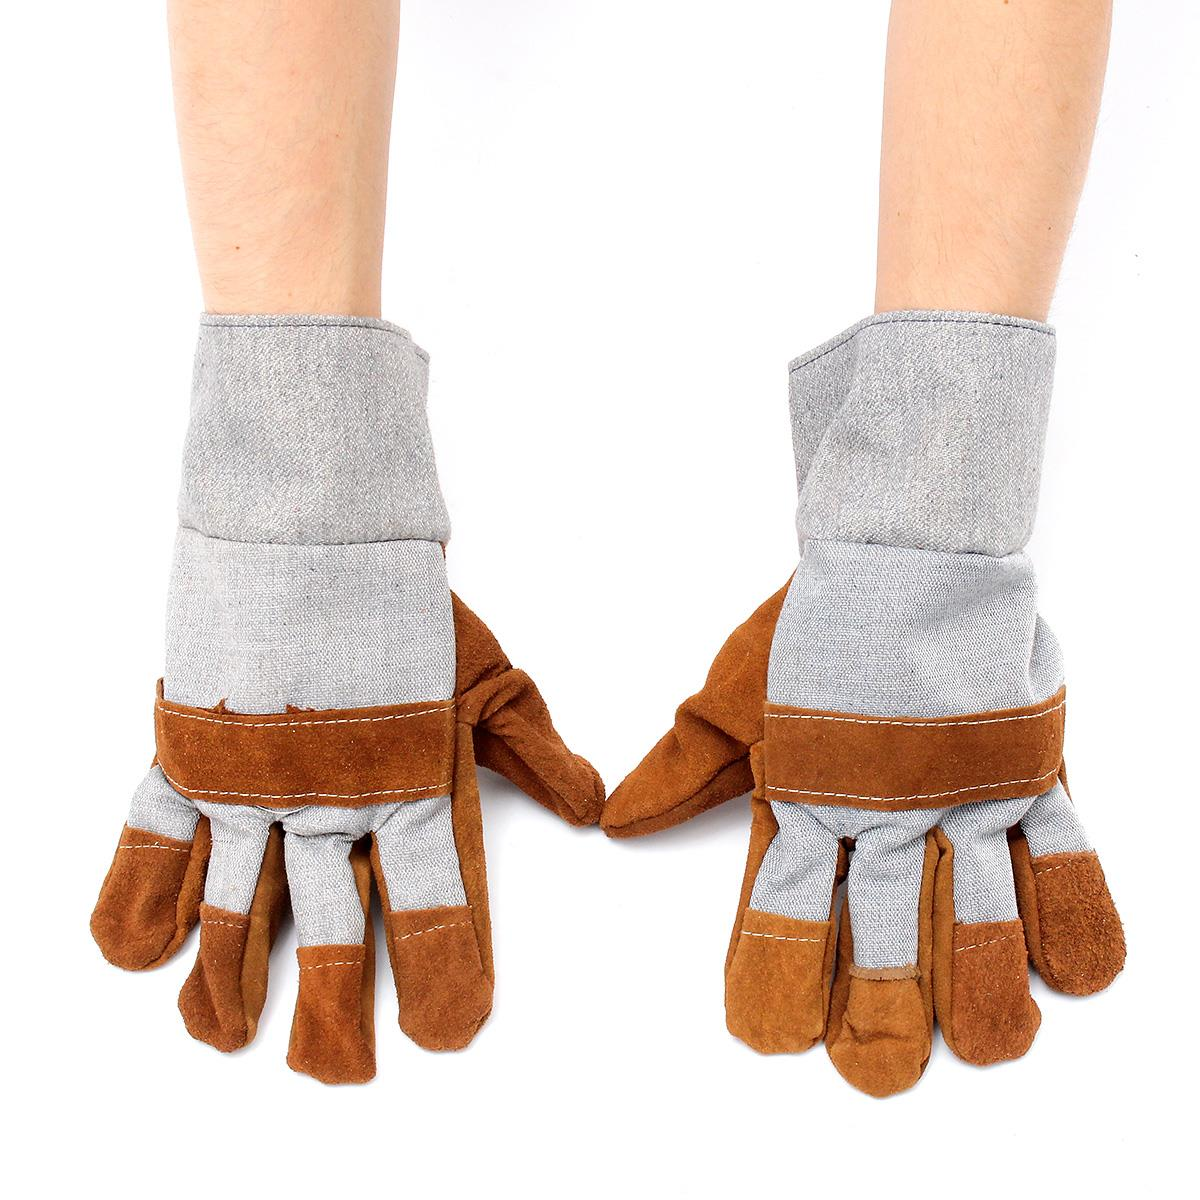 NEW Welding WELDERS Work Soft Cowhide Leather Plus Gloves For protecting hand Safety gloves welding welders work soft cowhide